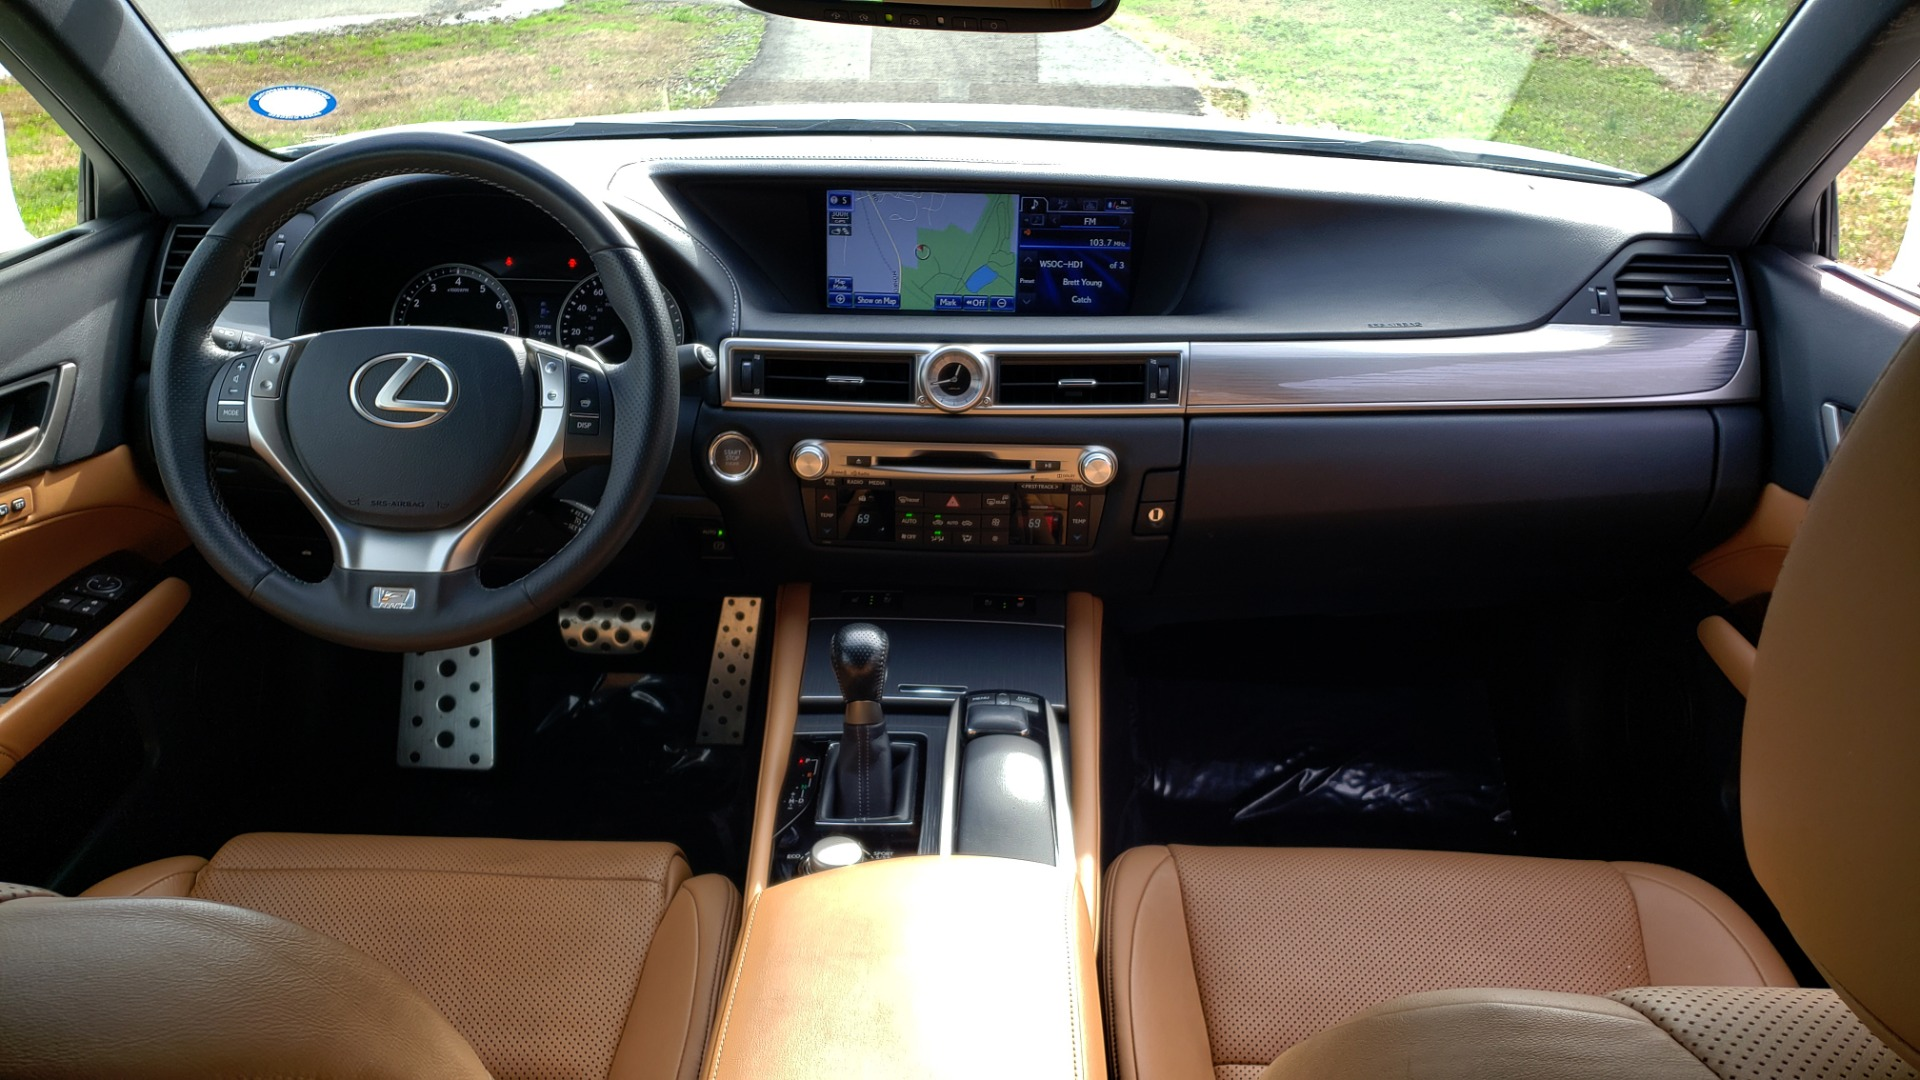 Used 2013 Lexus GS 350 F-SPORT / NAV / SUNROOF / BSM / PRK ASST / REARVIEW for sale Sold at Formula Imports in Charlotte NC 28227 73